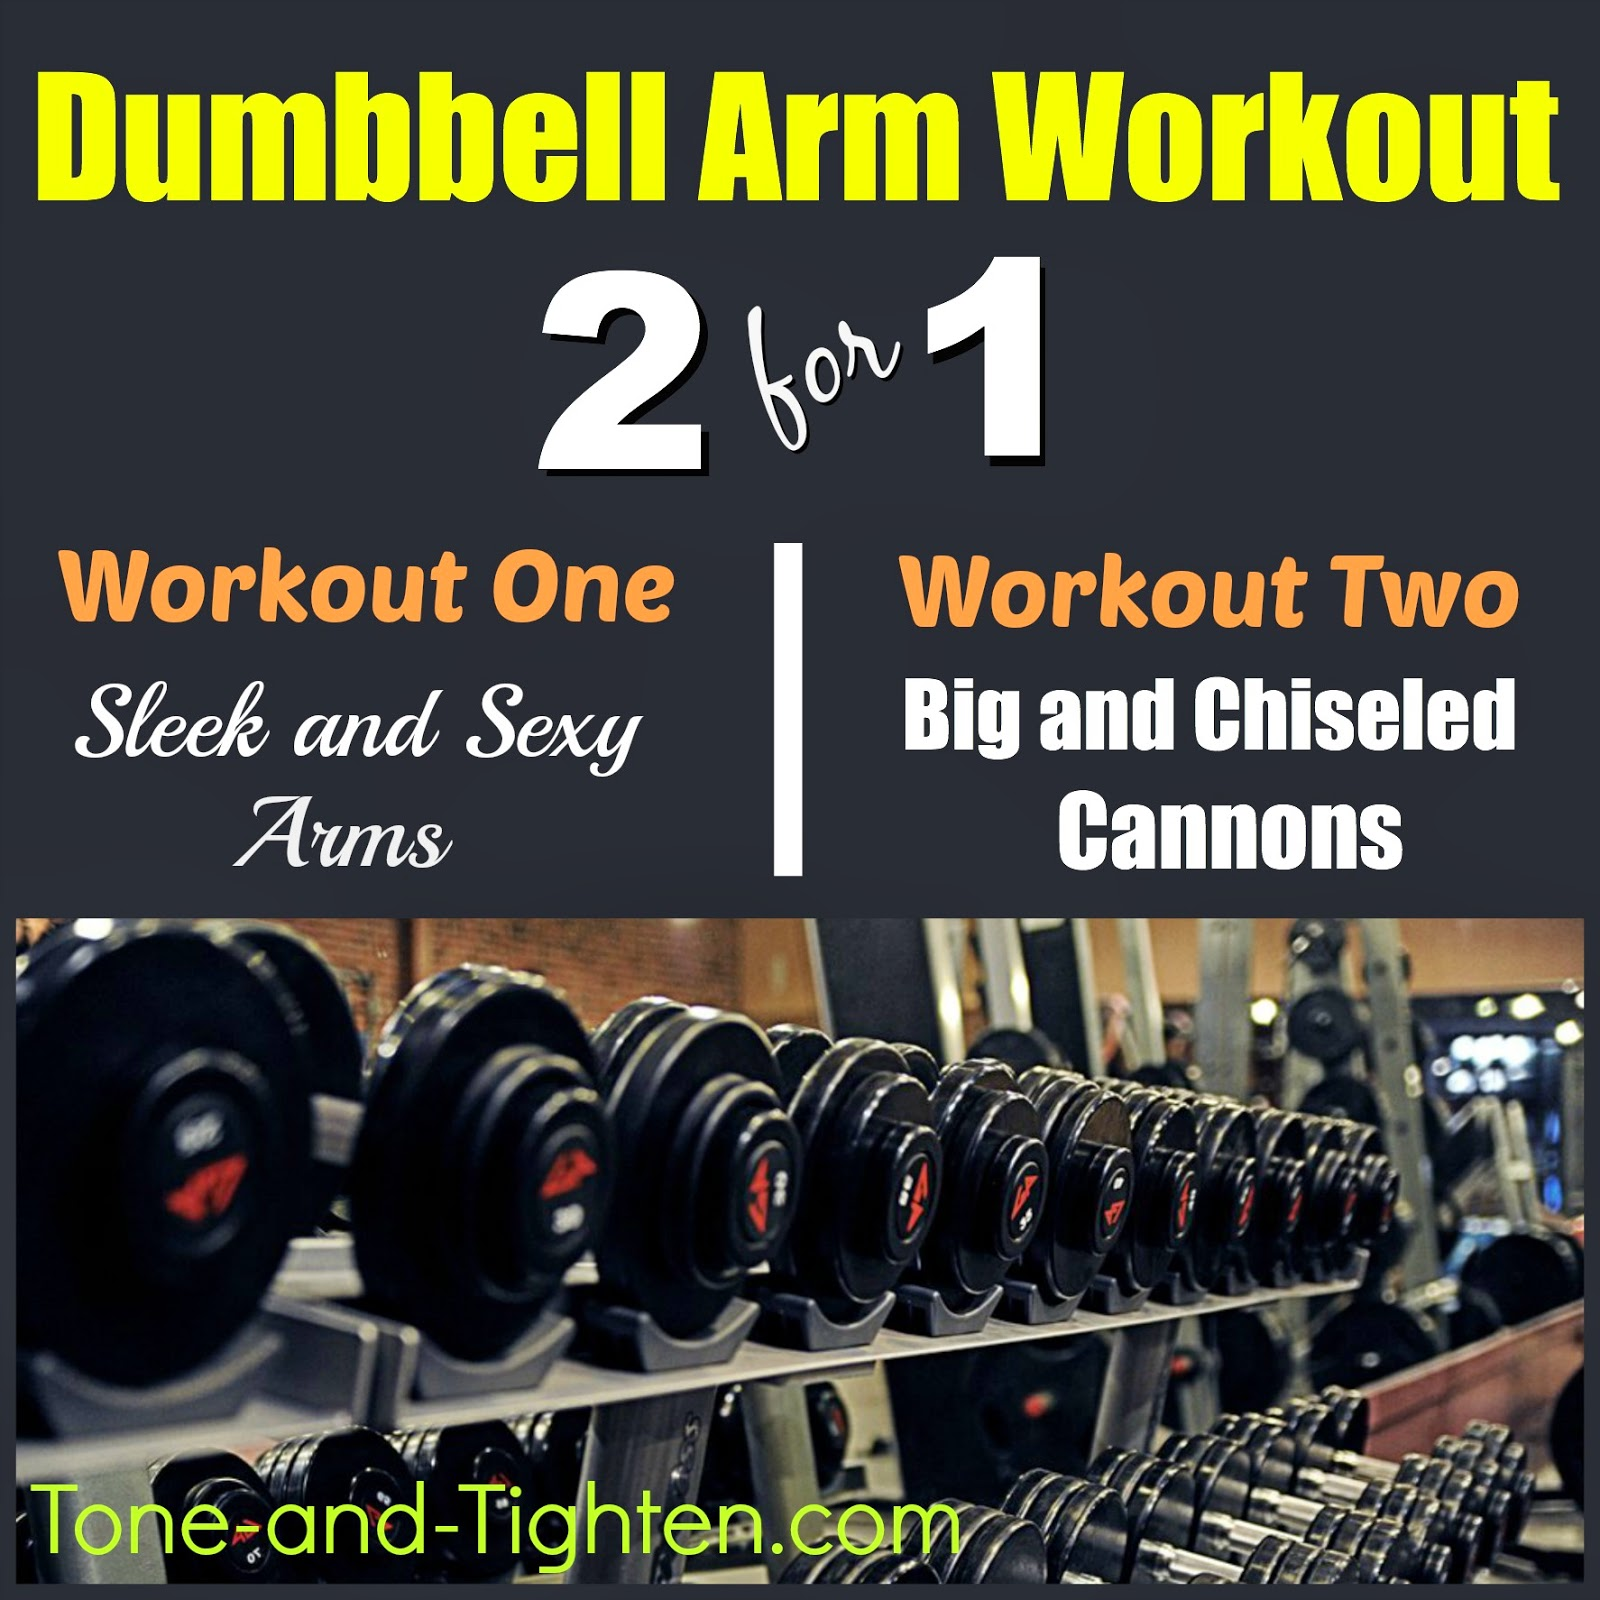 https://tone-and-tighten.com/2014/01/dumbbell-free-weight-arm-workout.html